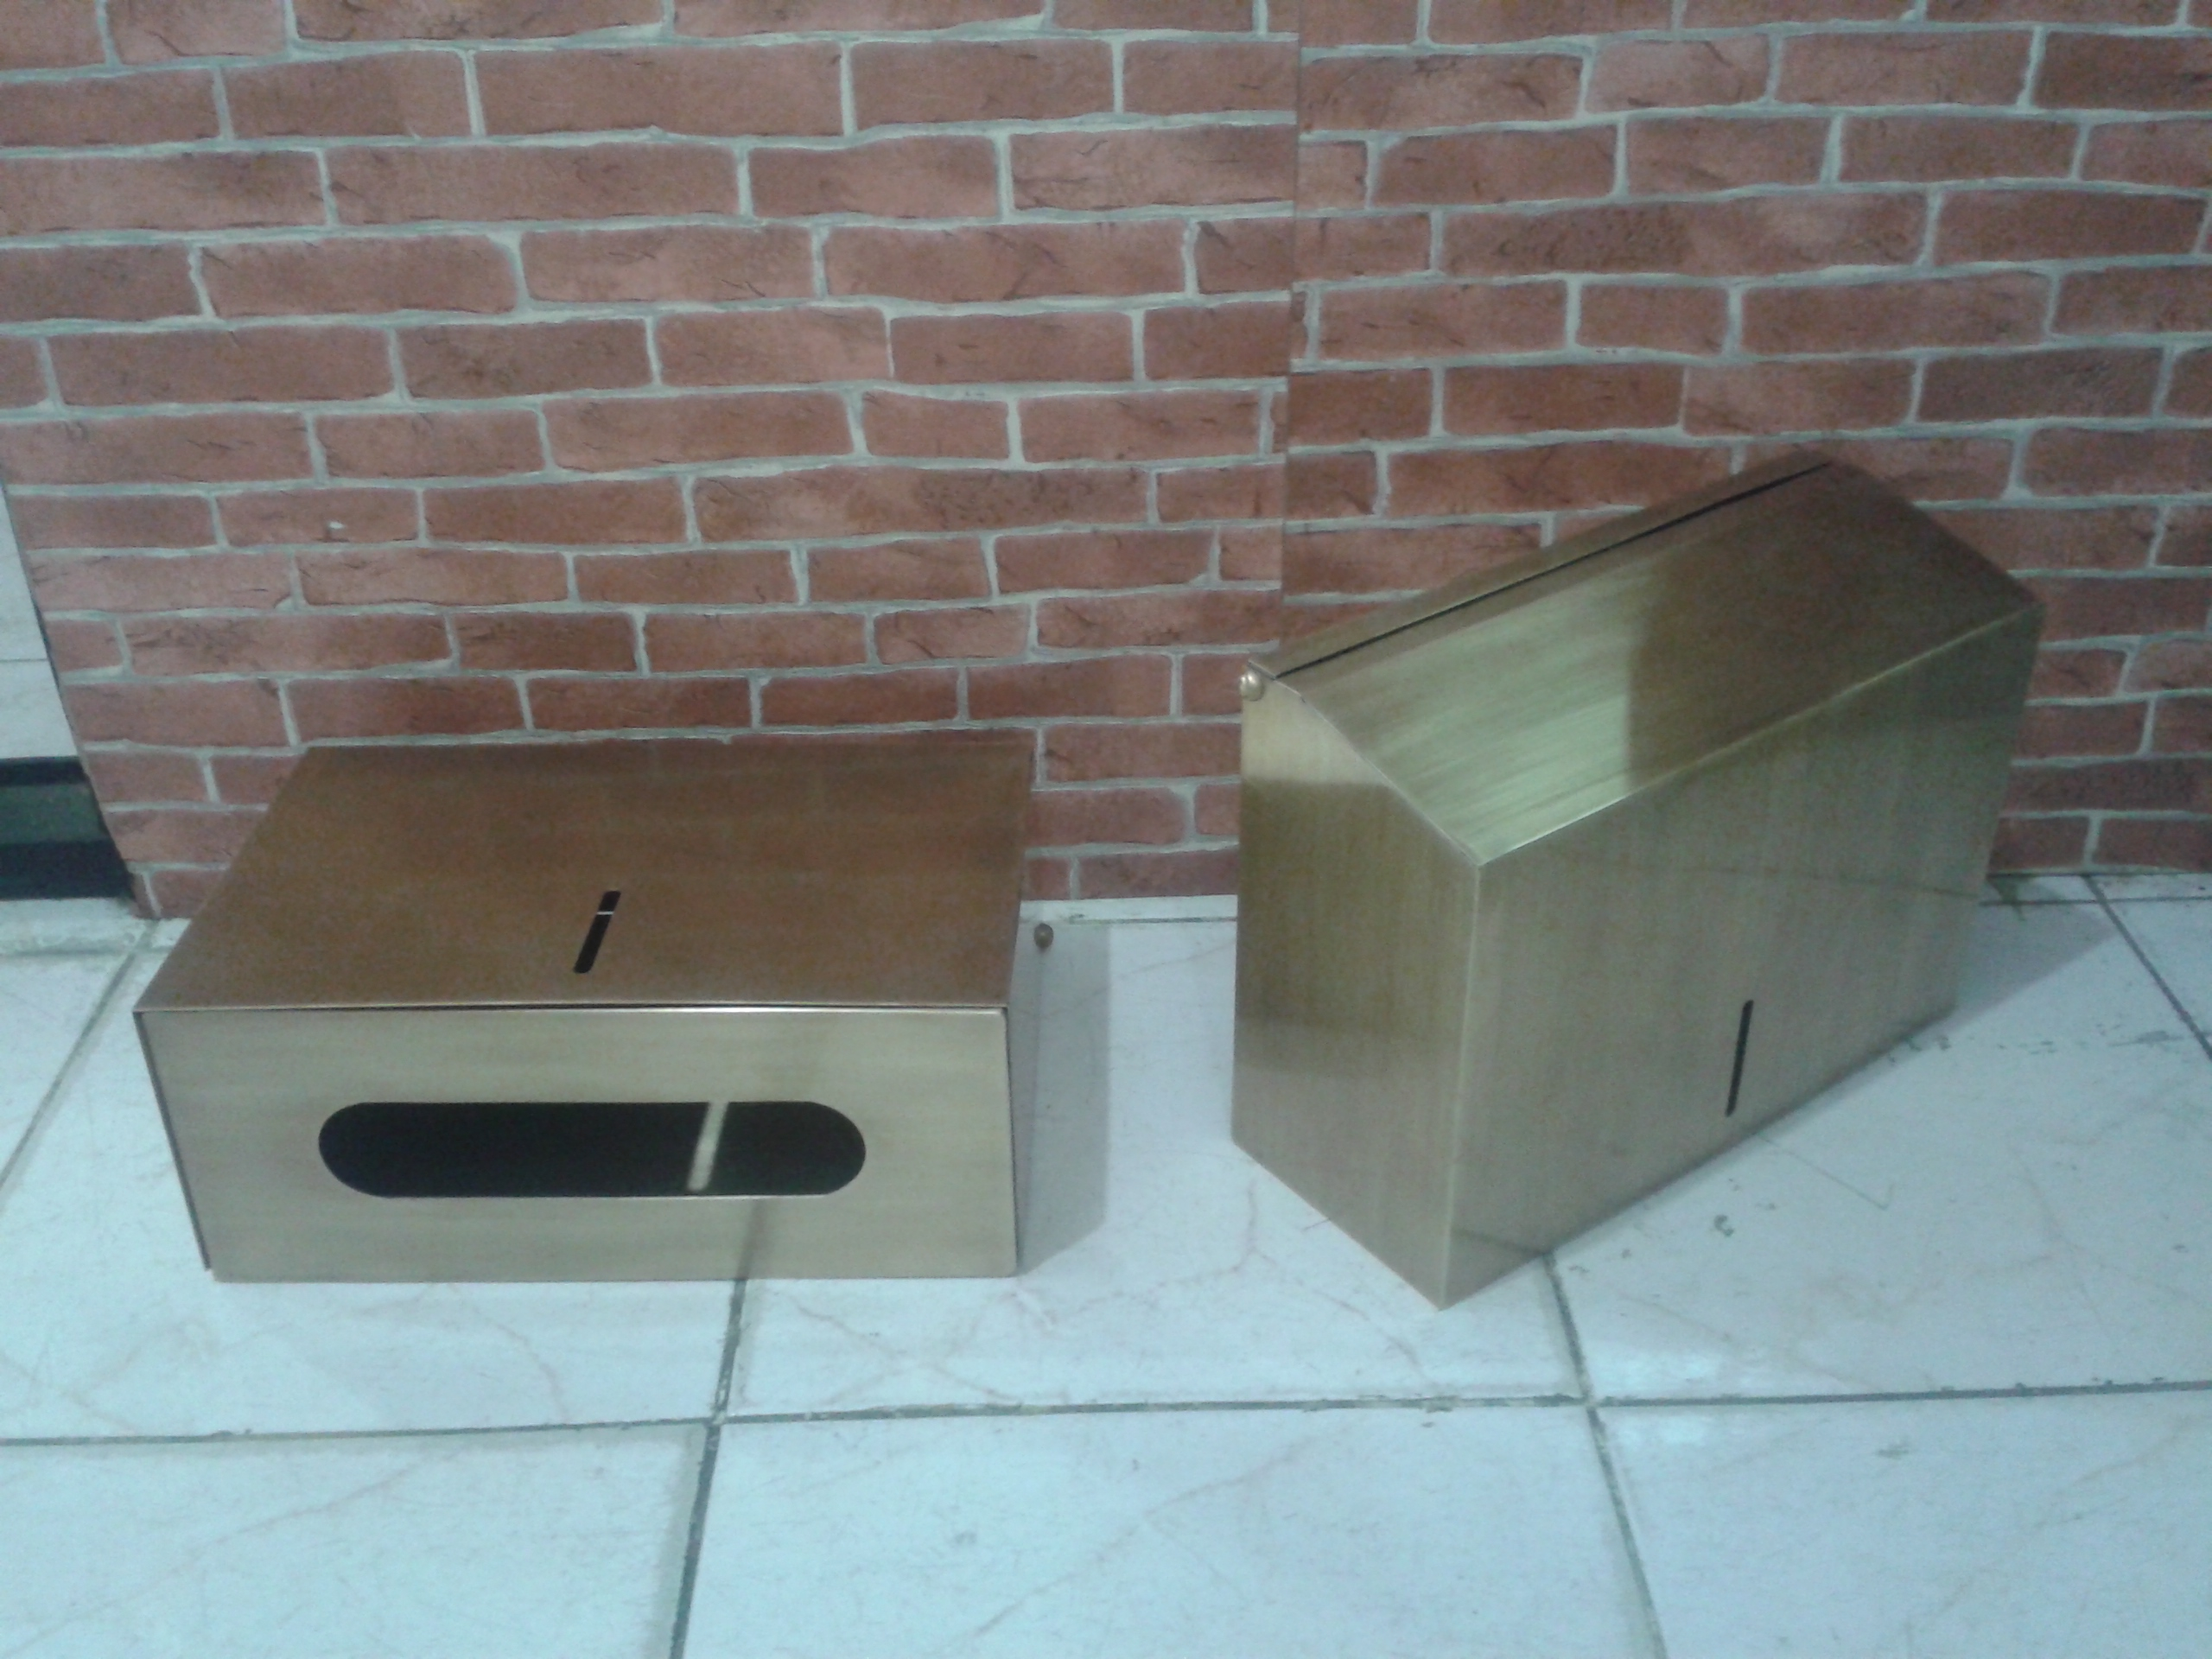 Toilet paper box material  is brass size L: 297 mm.H :217 mm. W:117 mm.Thick 1 mm.